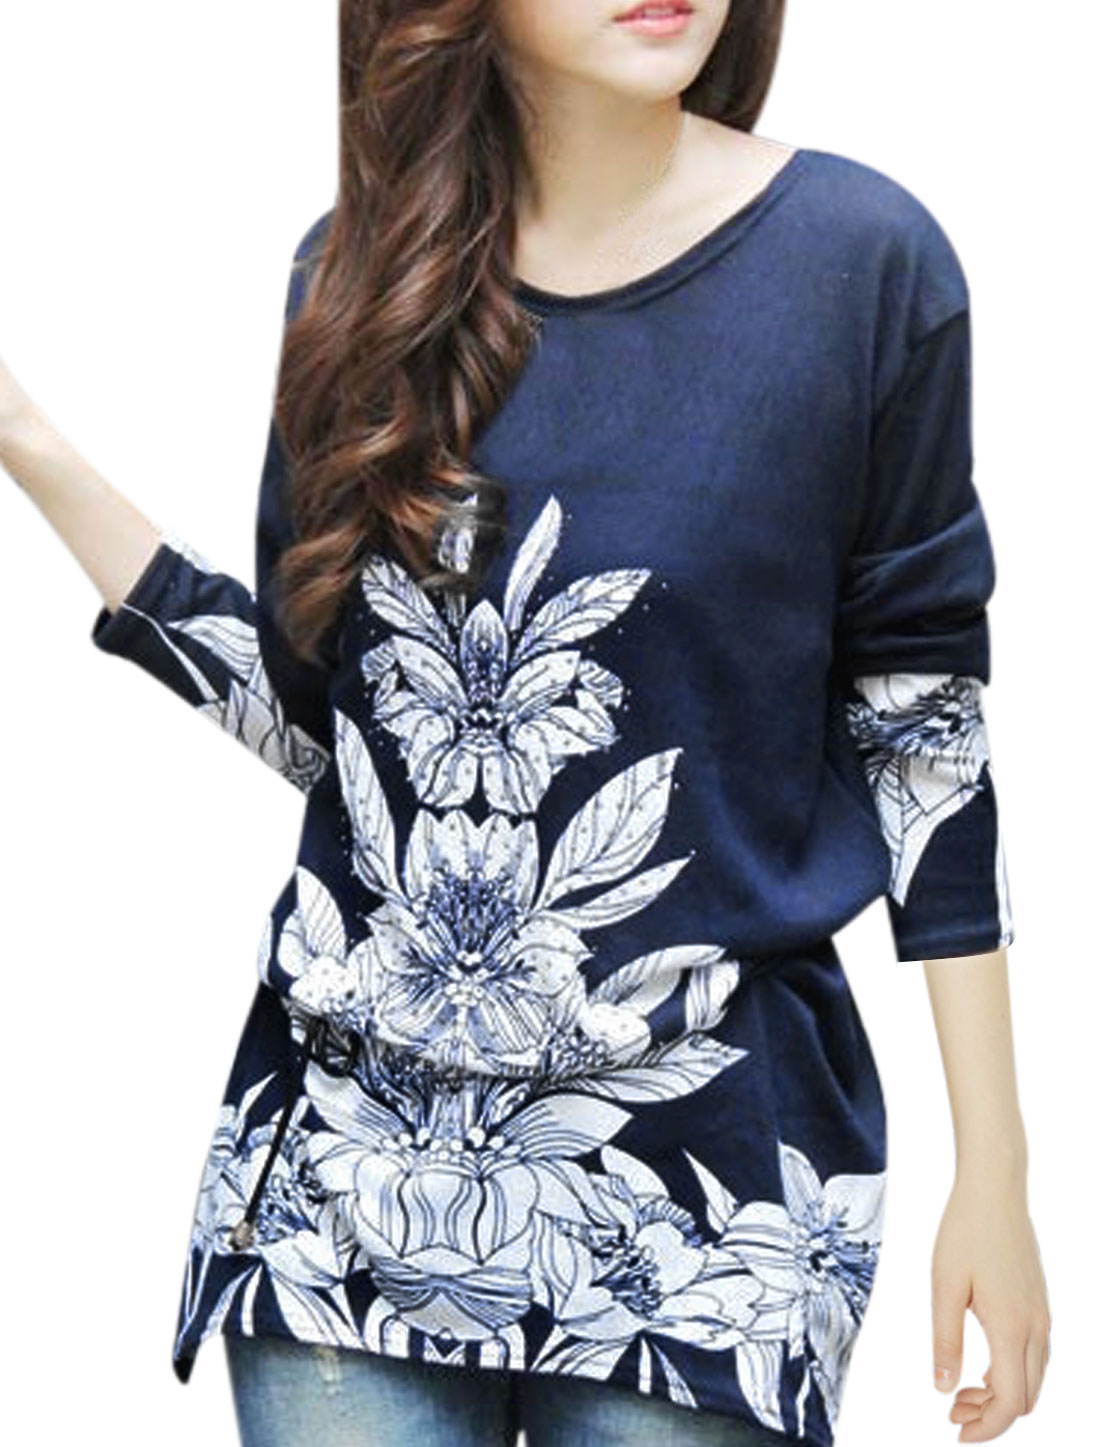 Ladies Navy Blue White Floral Prints Slipover Beads Decor Tunic Knit Shirt S